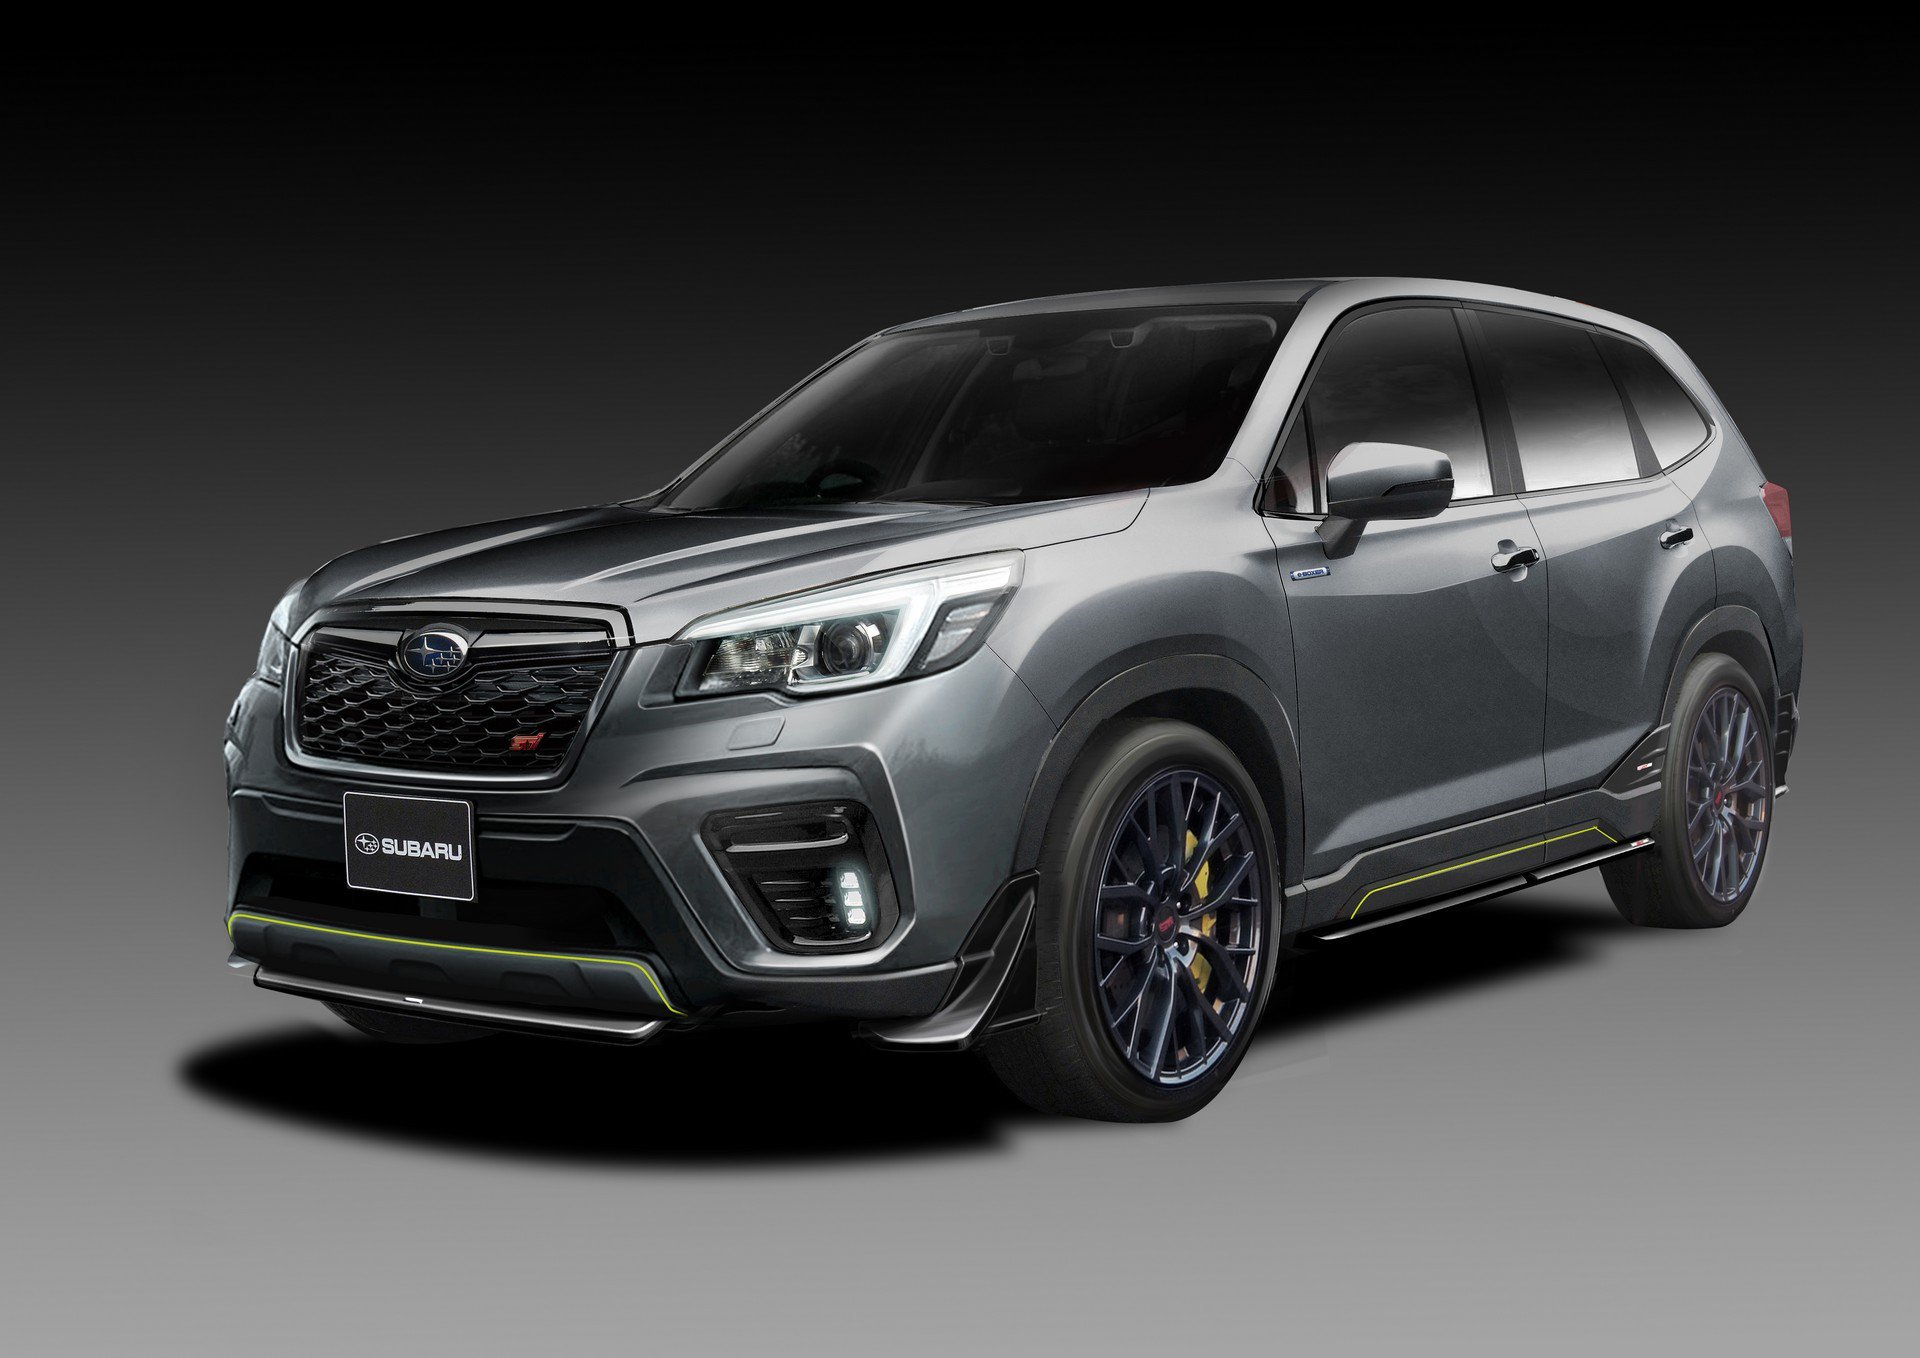 62 The Best 2020 Subaru Forester New Concept